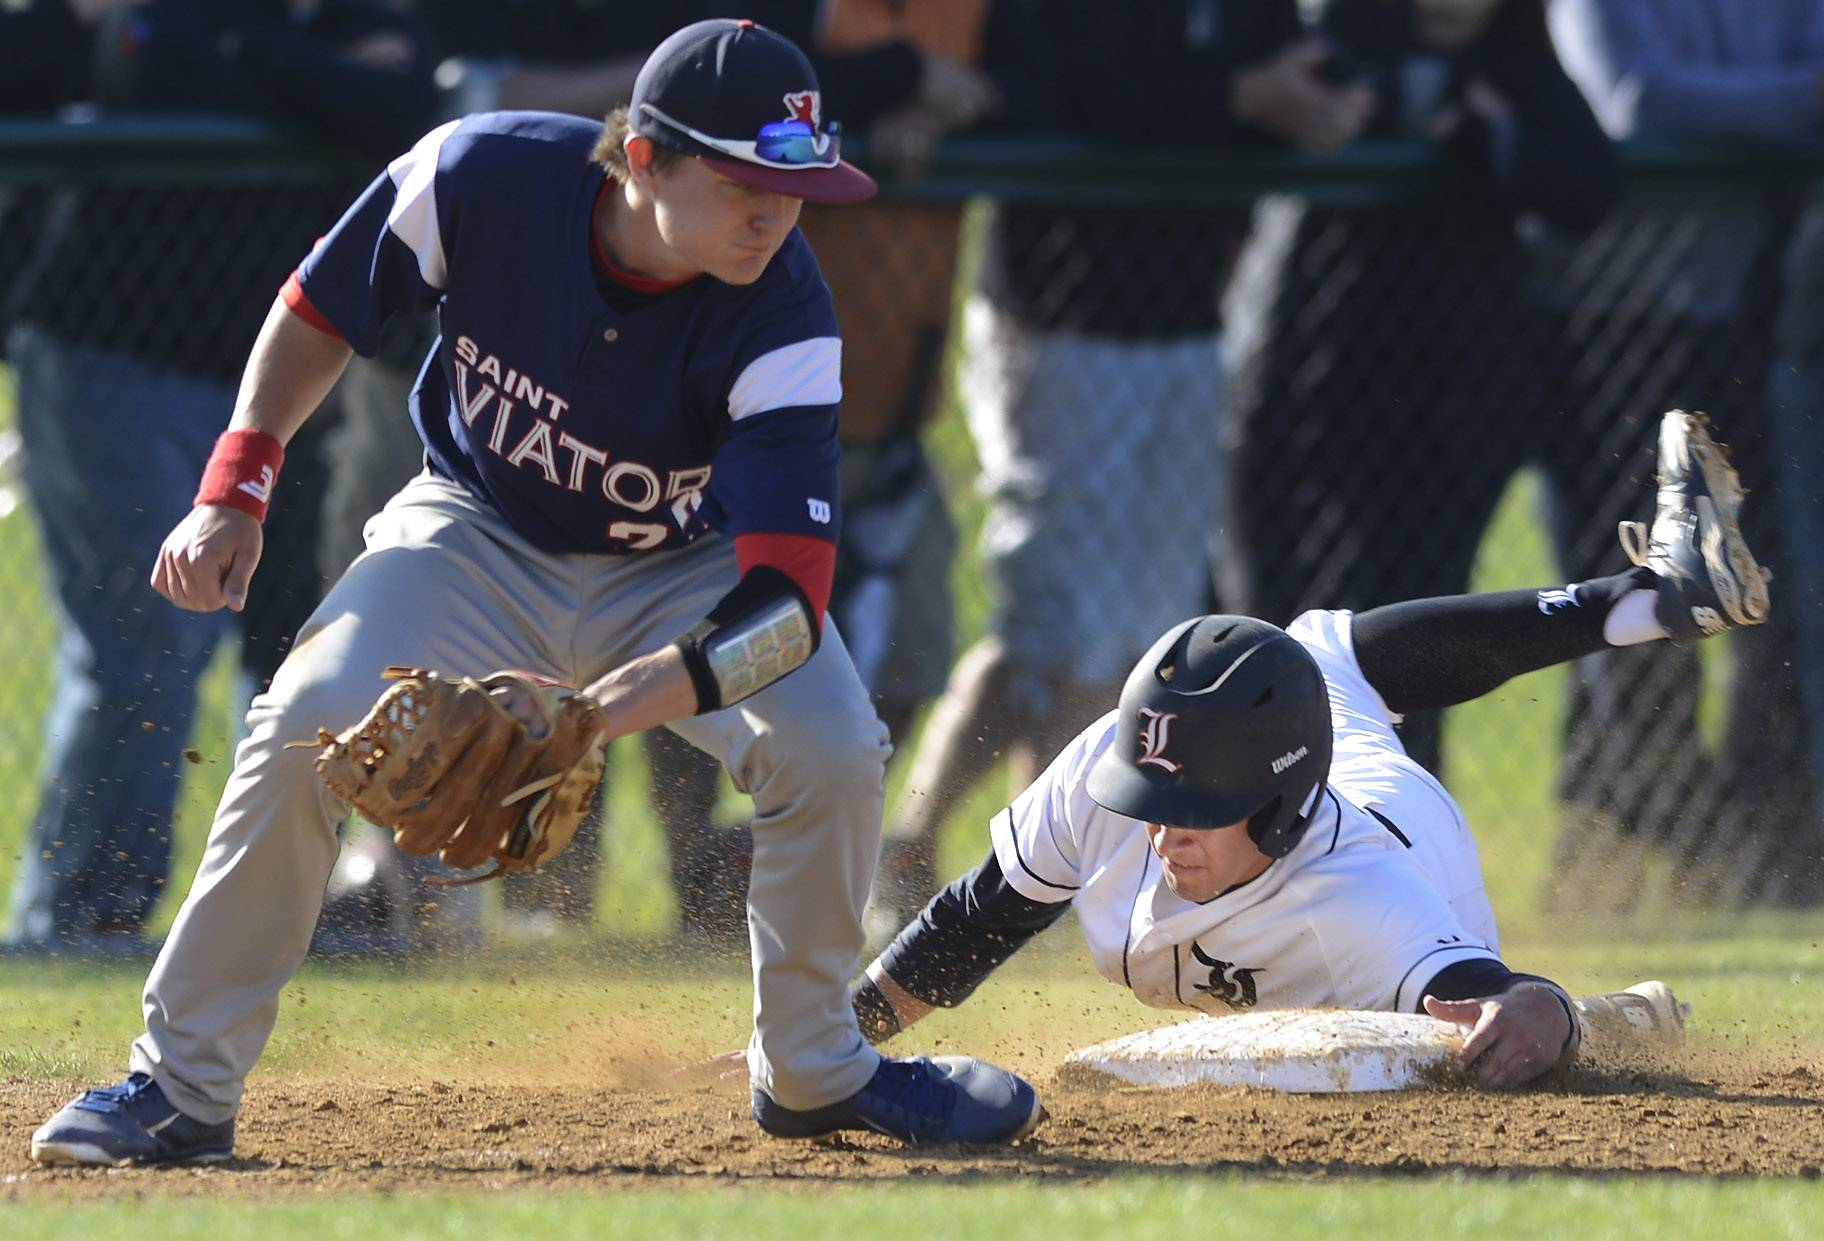 Libertyville's Jimmy Govern grabs the base on a steal of third as St. Viator third baseman Bobby Calmeyn takes the throw during Class 4A sectional semifinal play Wednesday at Glenbrook South.